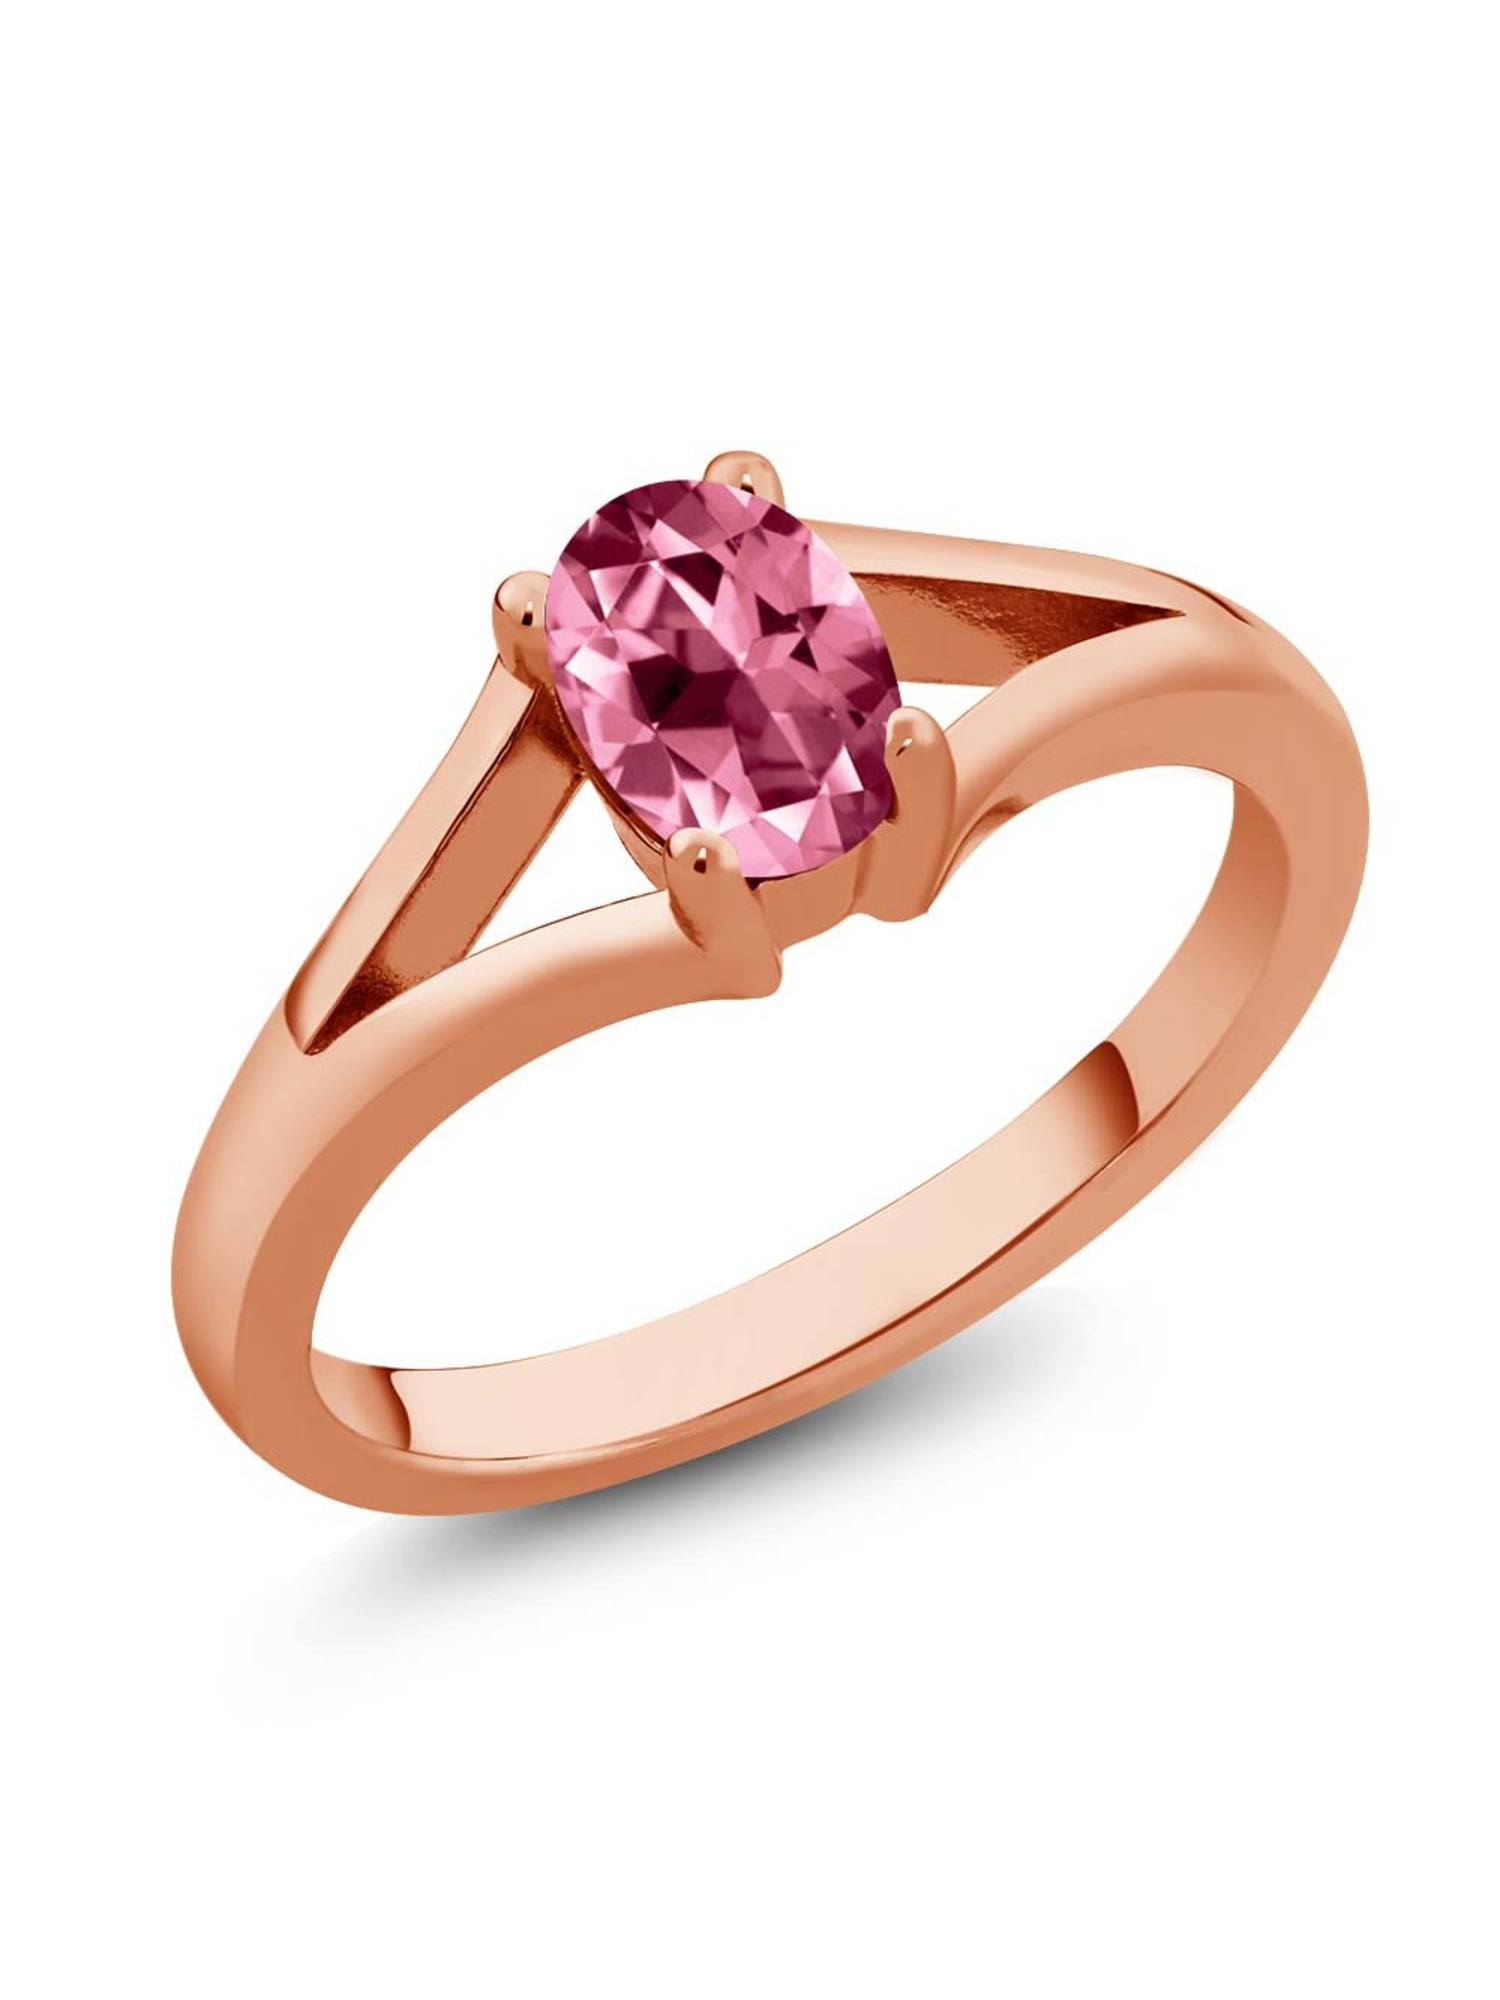 925 Rose Gold Plated Silver Ring Set with Oval Pink Topaz from Swarovski by